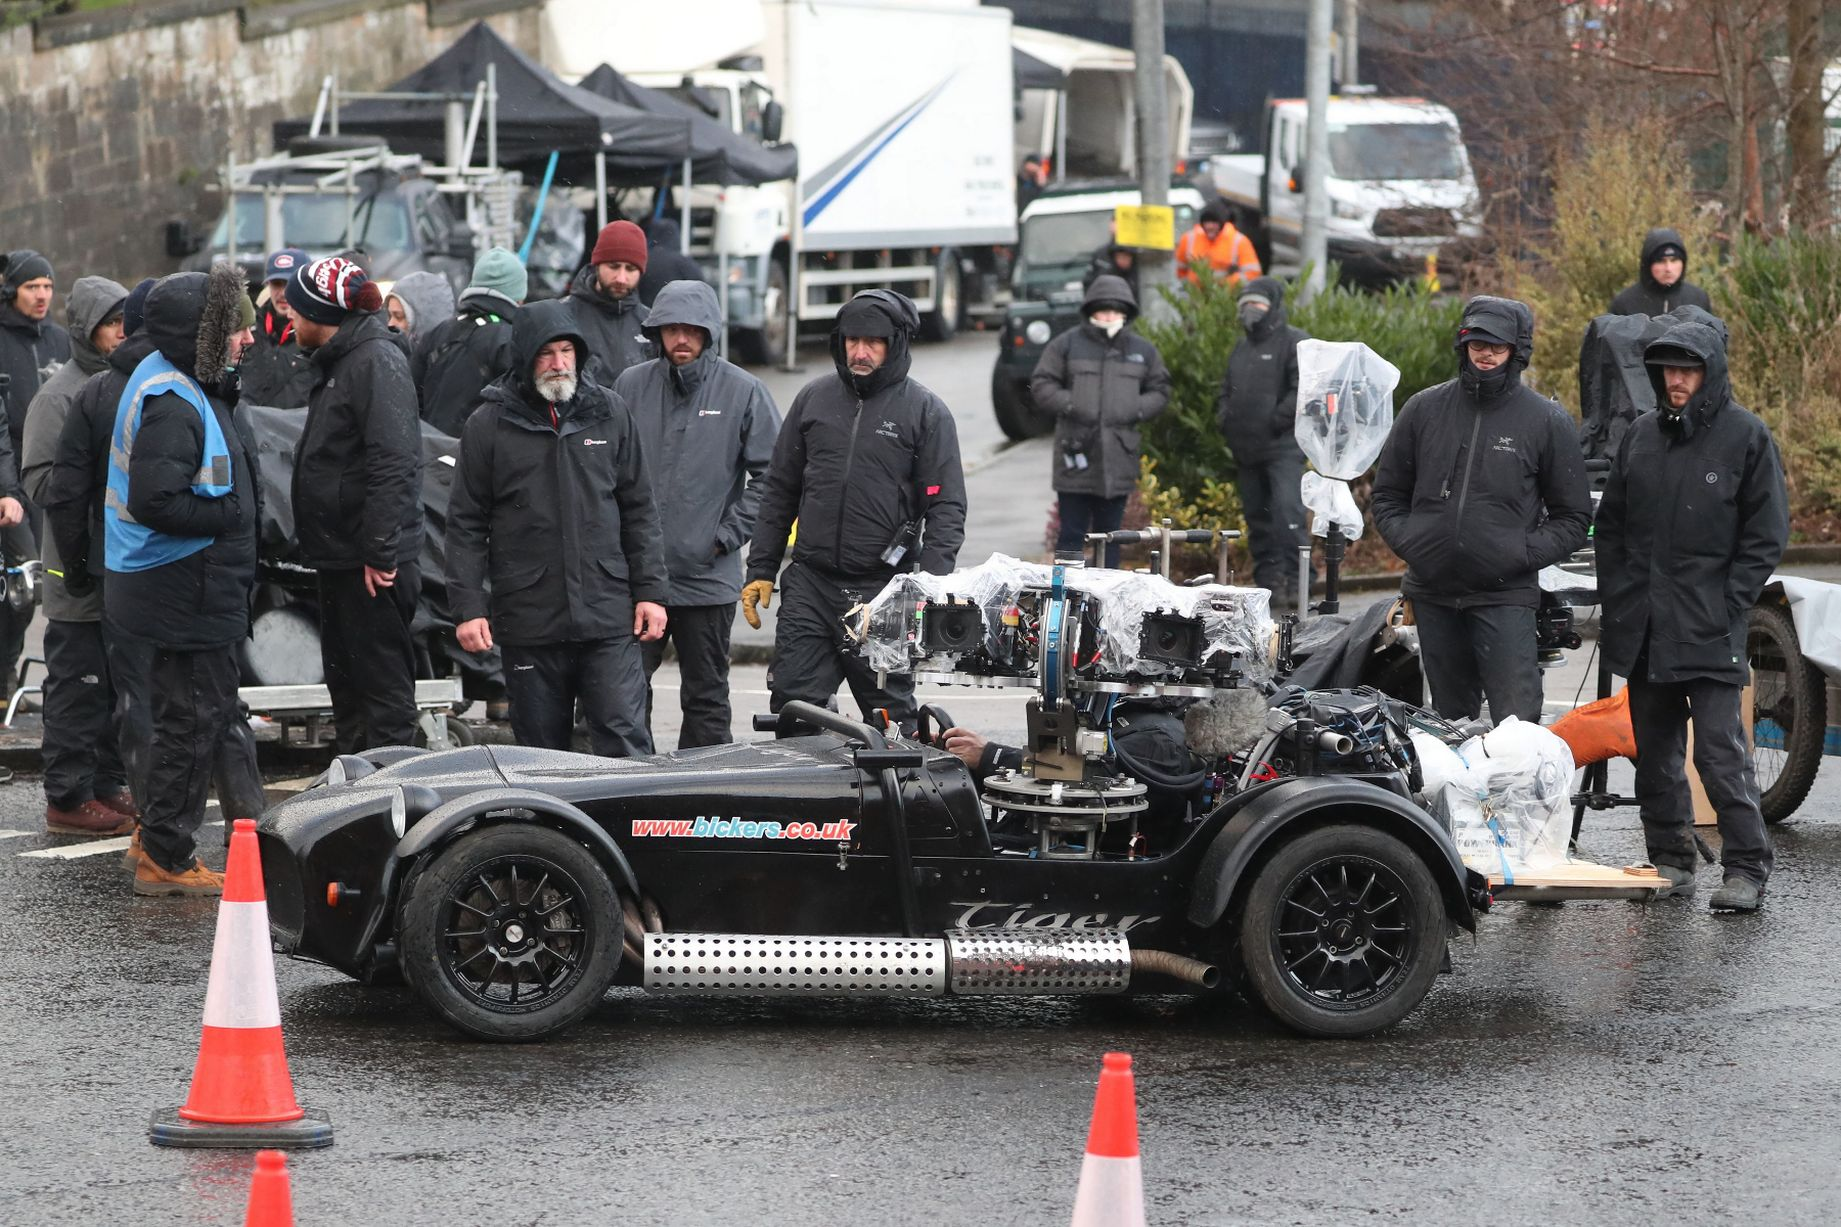 """Crews brave inclement weather during filming for """"The Batman"""" in Glasgow, Scotland."""